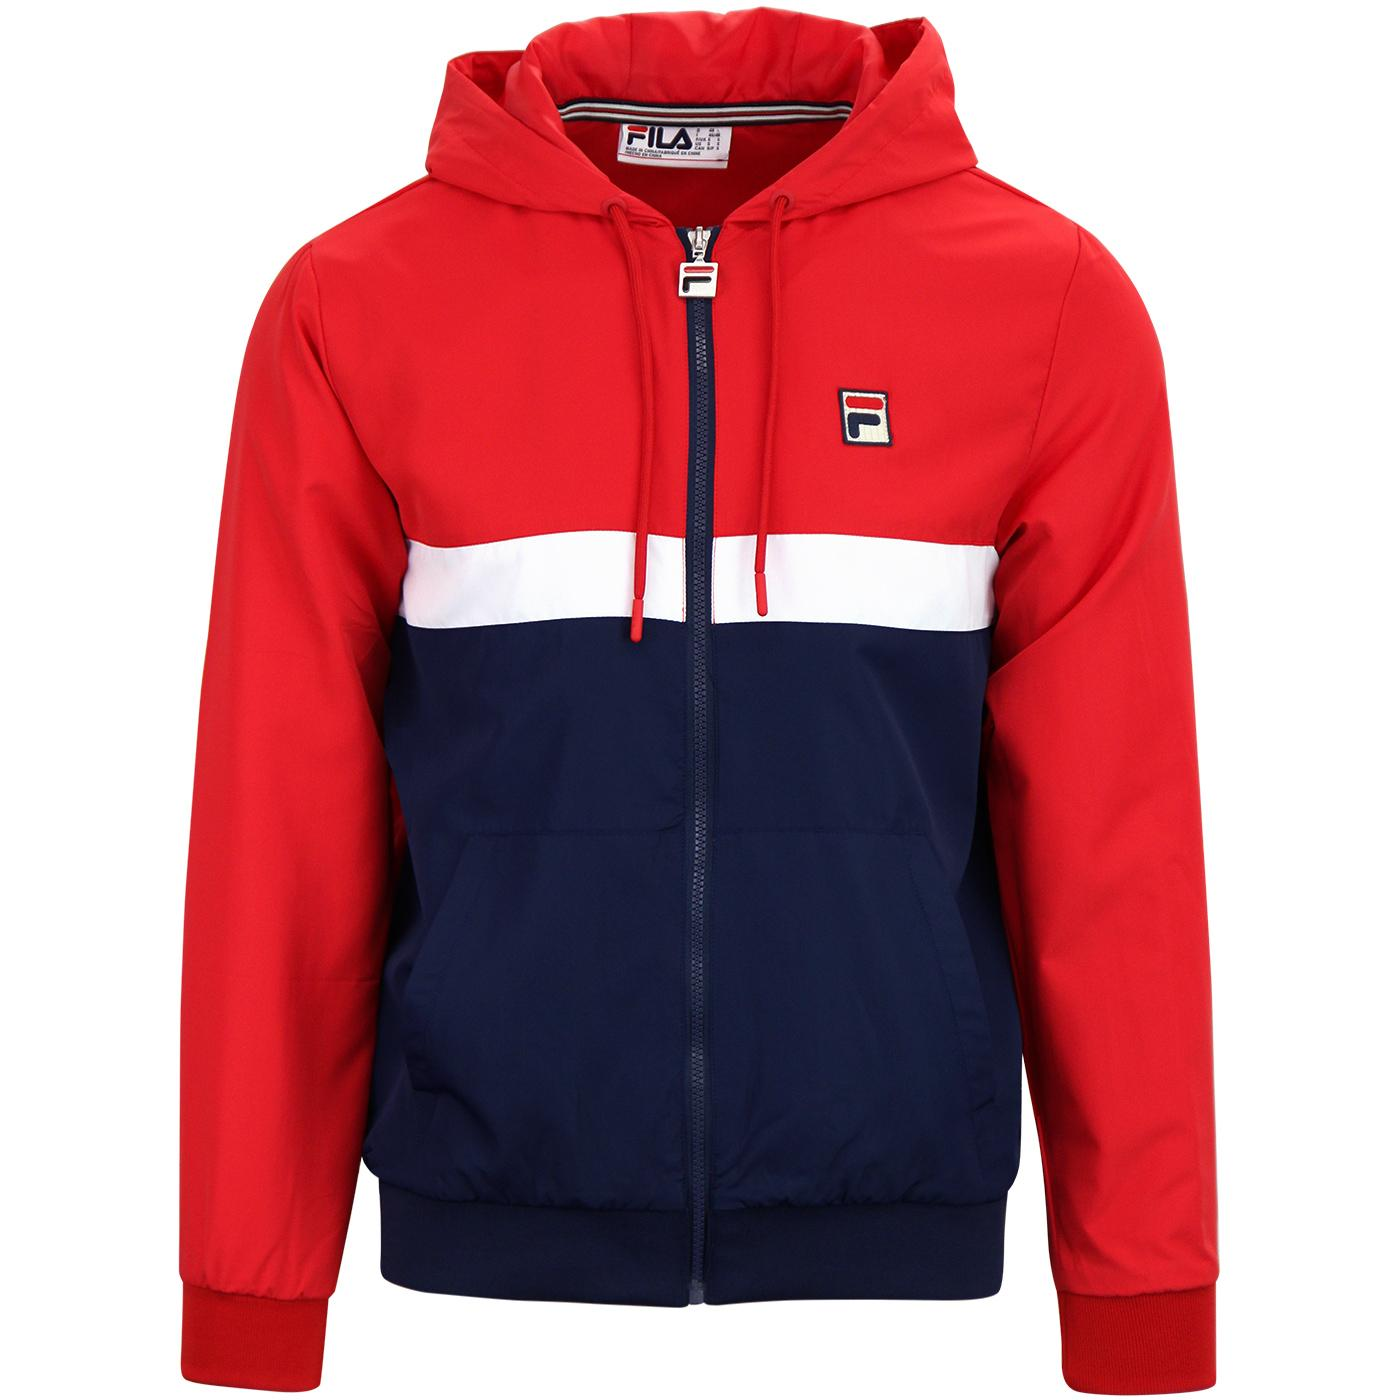 Ambrose FILA VINTAGE Retro 70s Colour Block Jacket